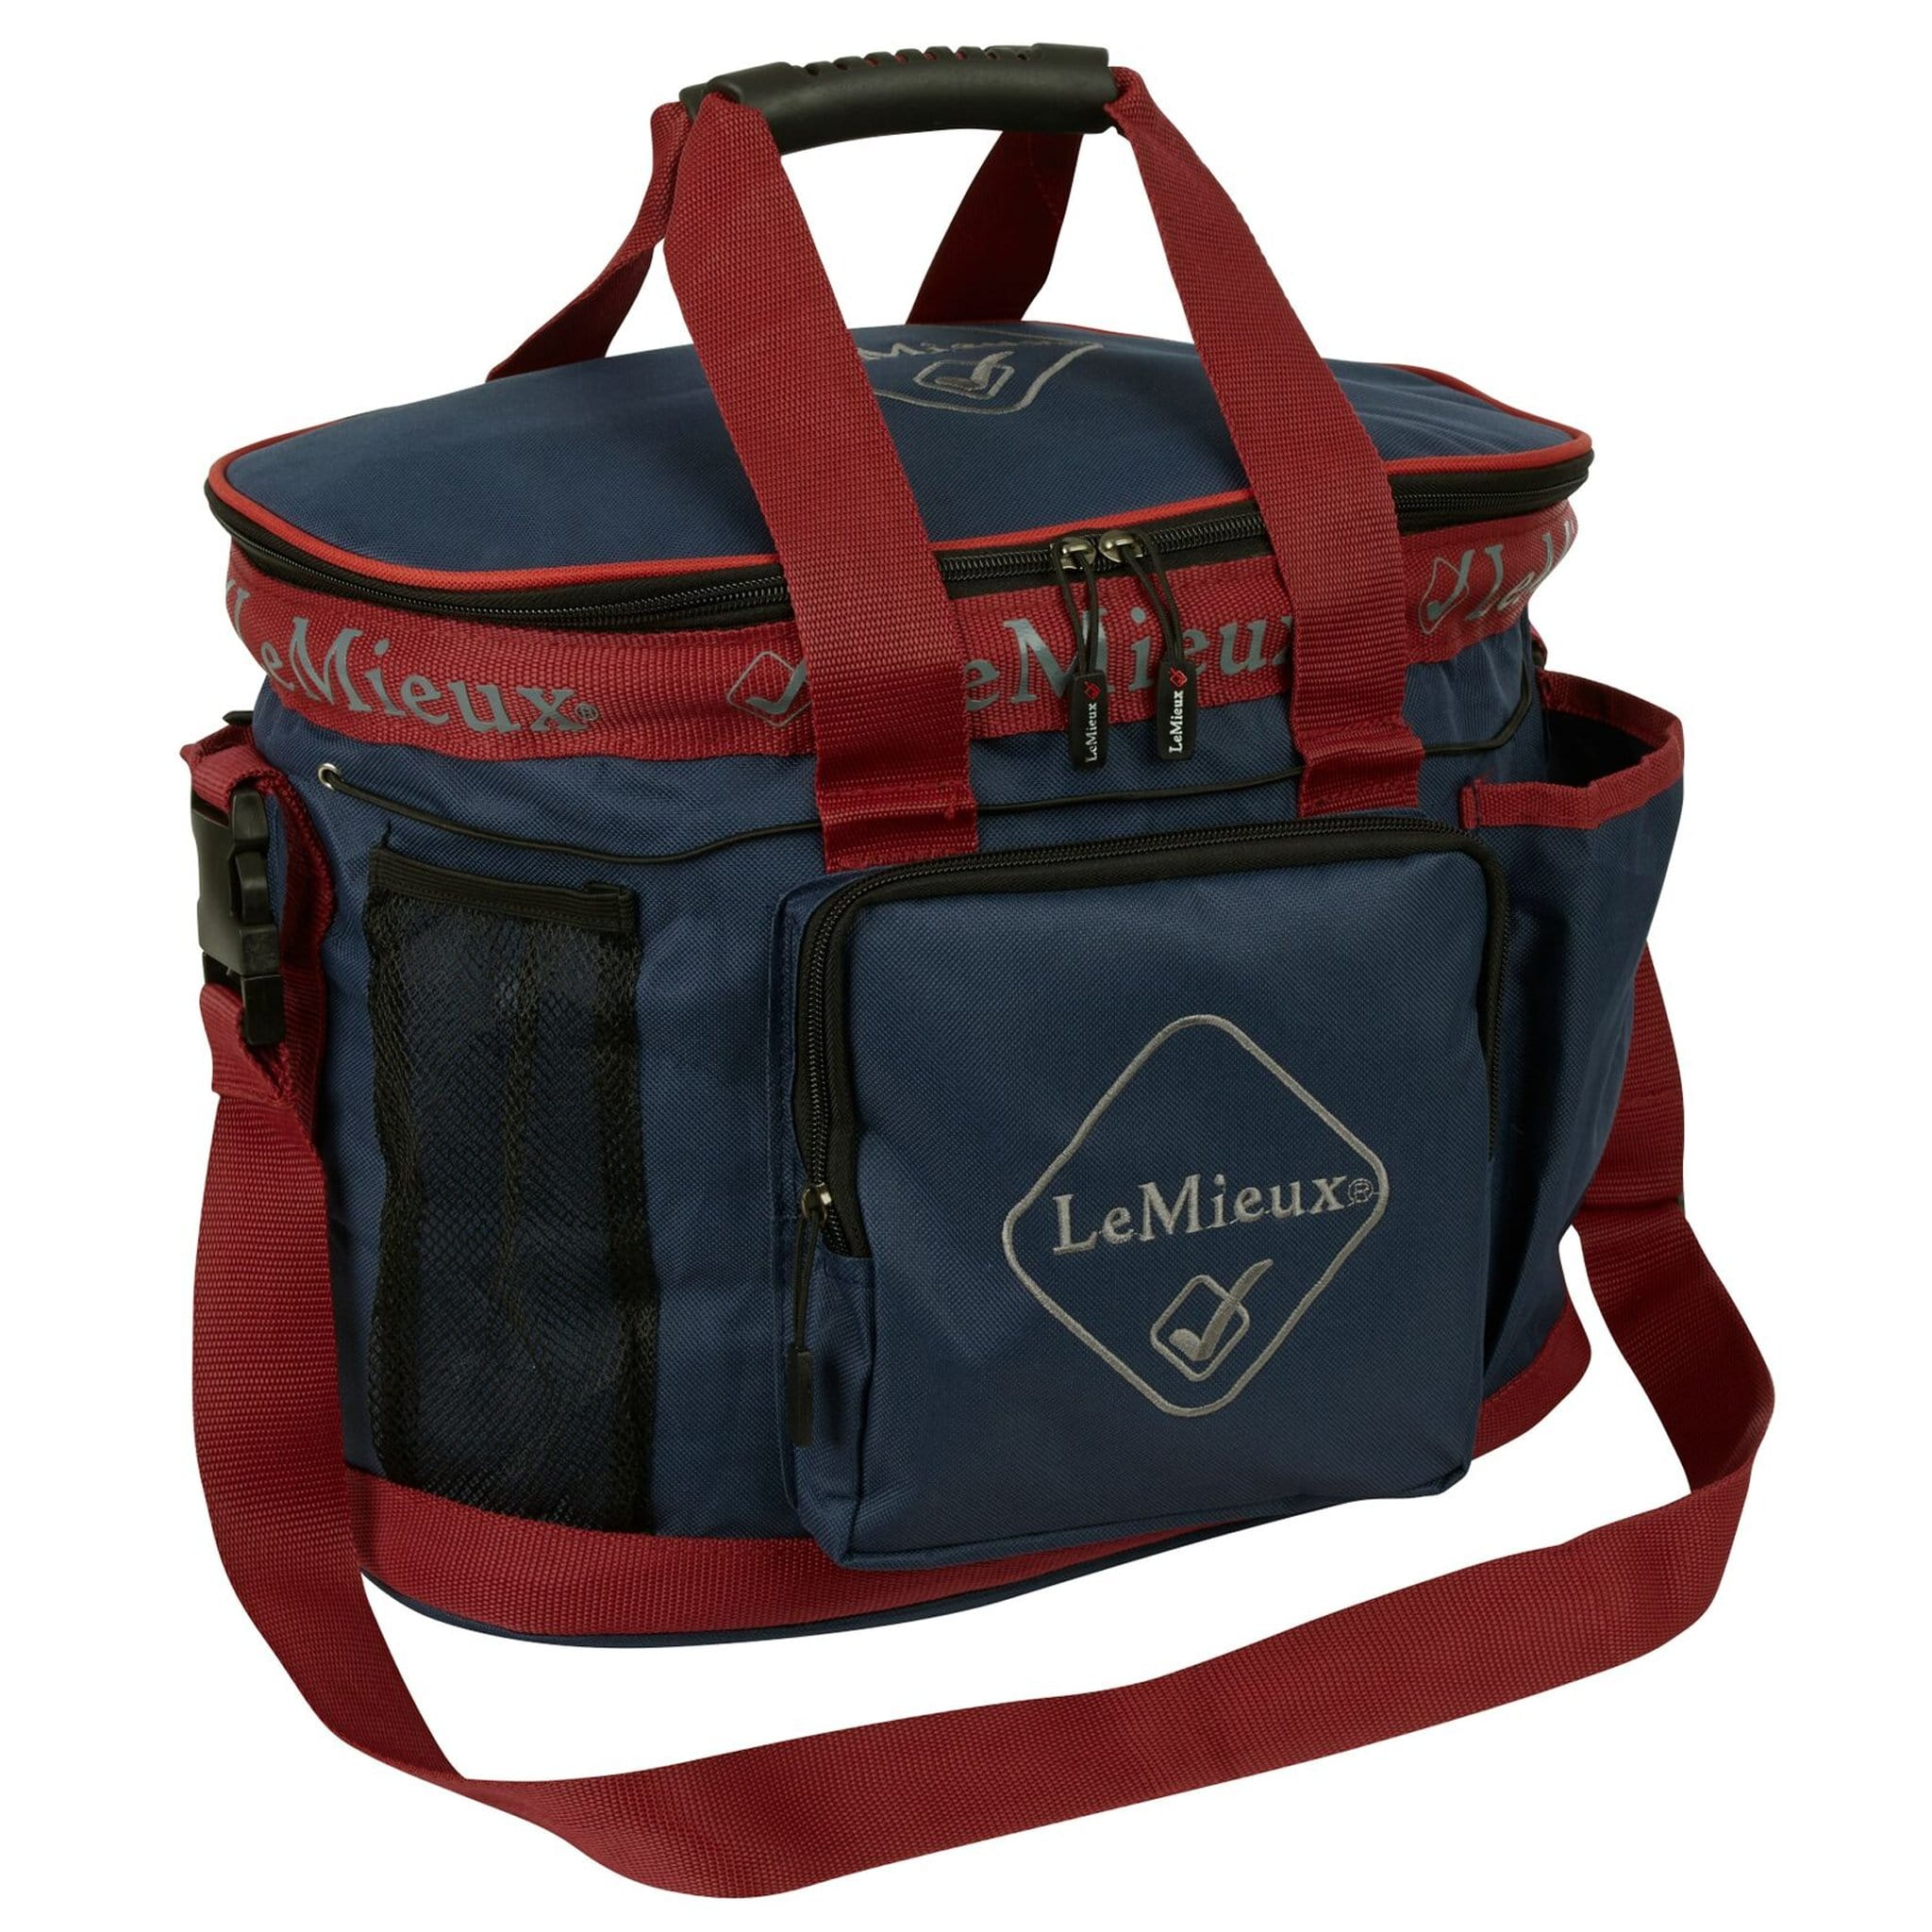 LeMieux ProKit System Luxury Grooming Bag Navy 6249